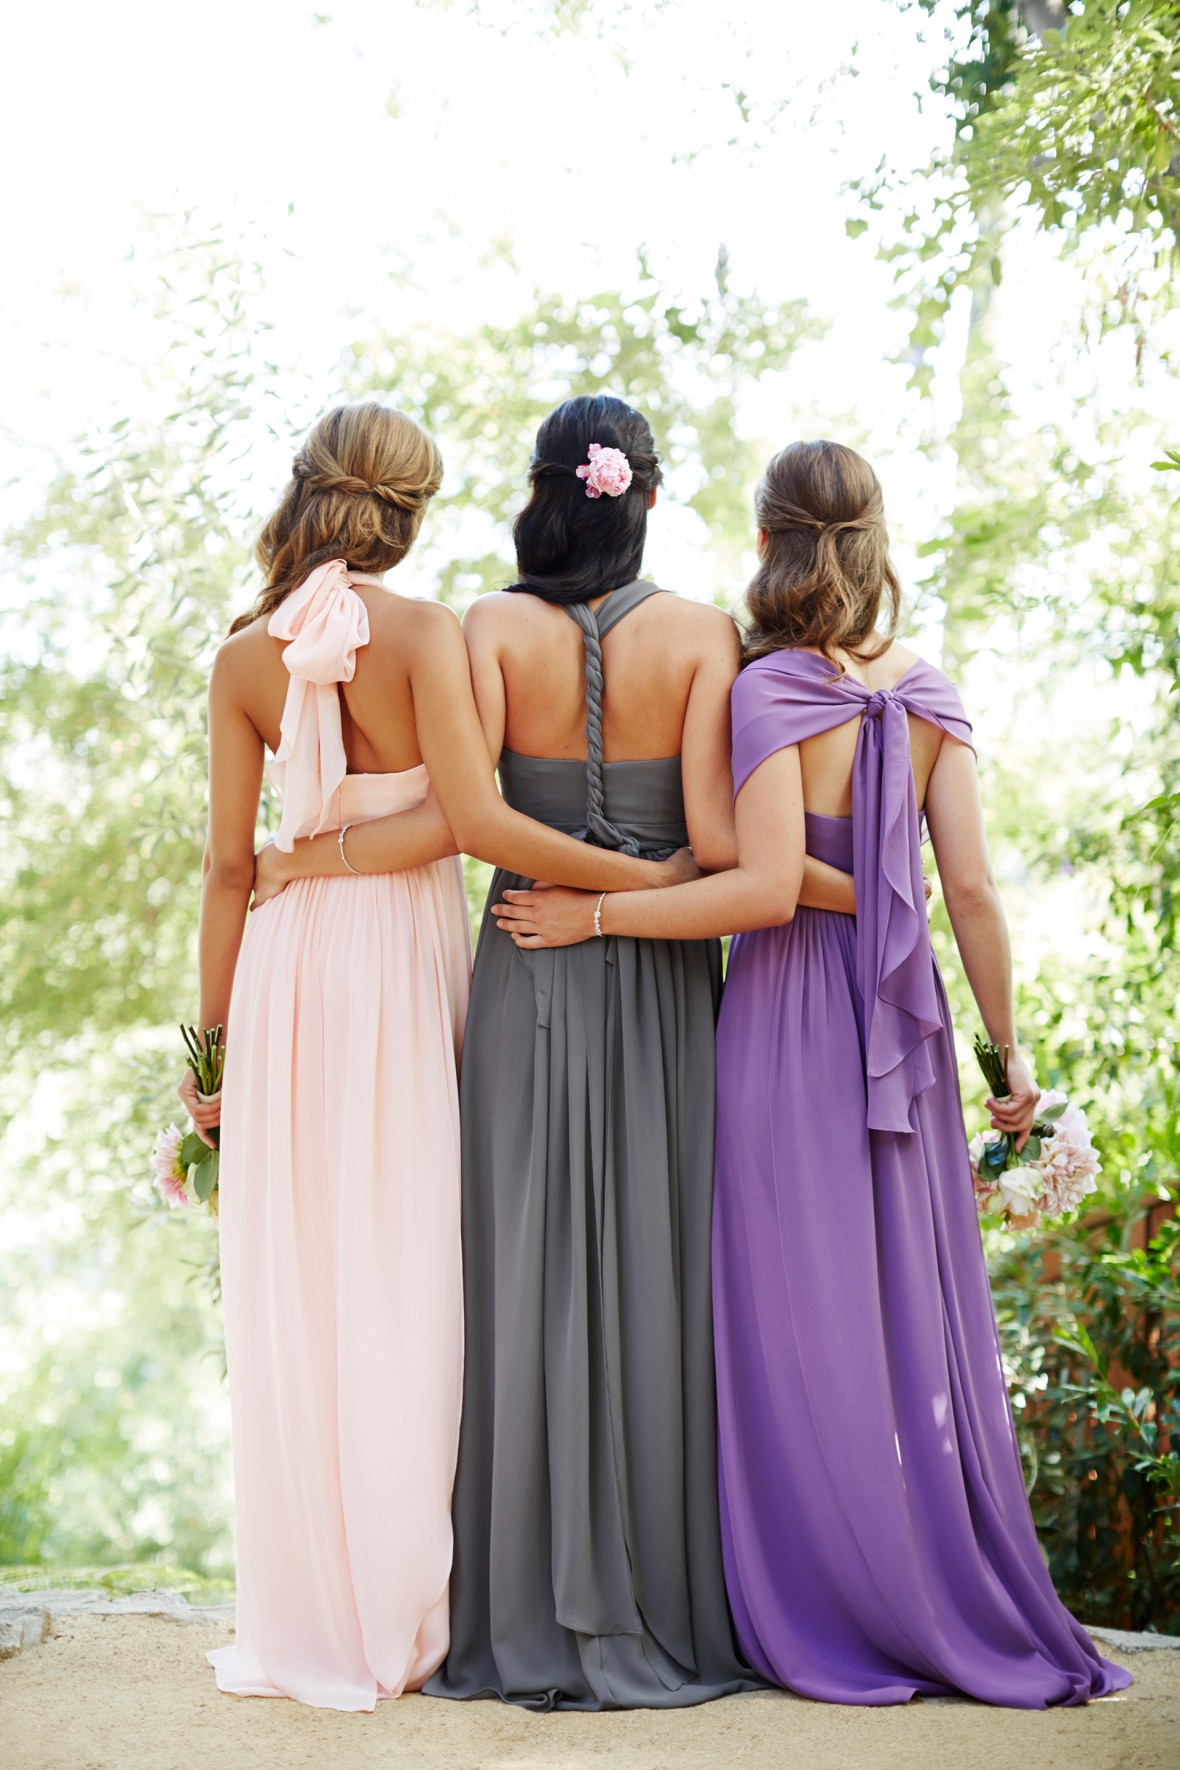 Rent your bridesmaids dress with vow to be chic the budget savvy bride rent gorgeous designer bridesmaids dresses from vow to be chic starting at 50 ombrellifo Gallery